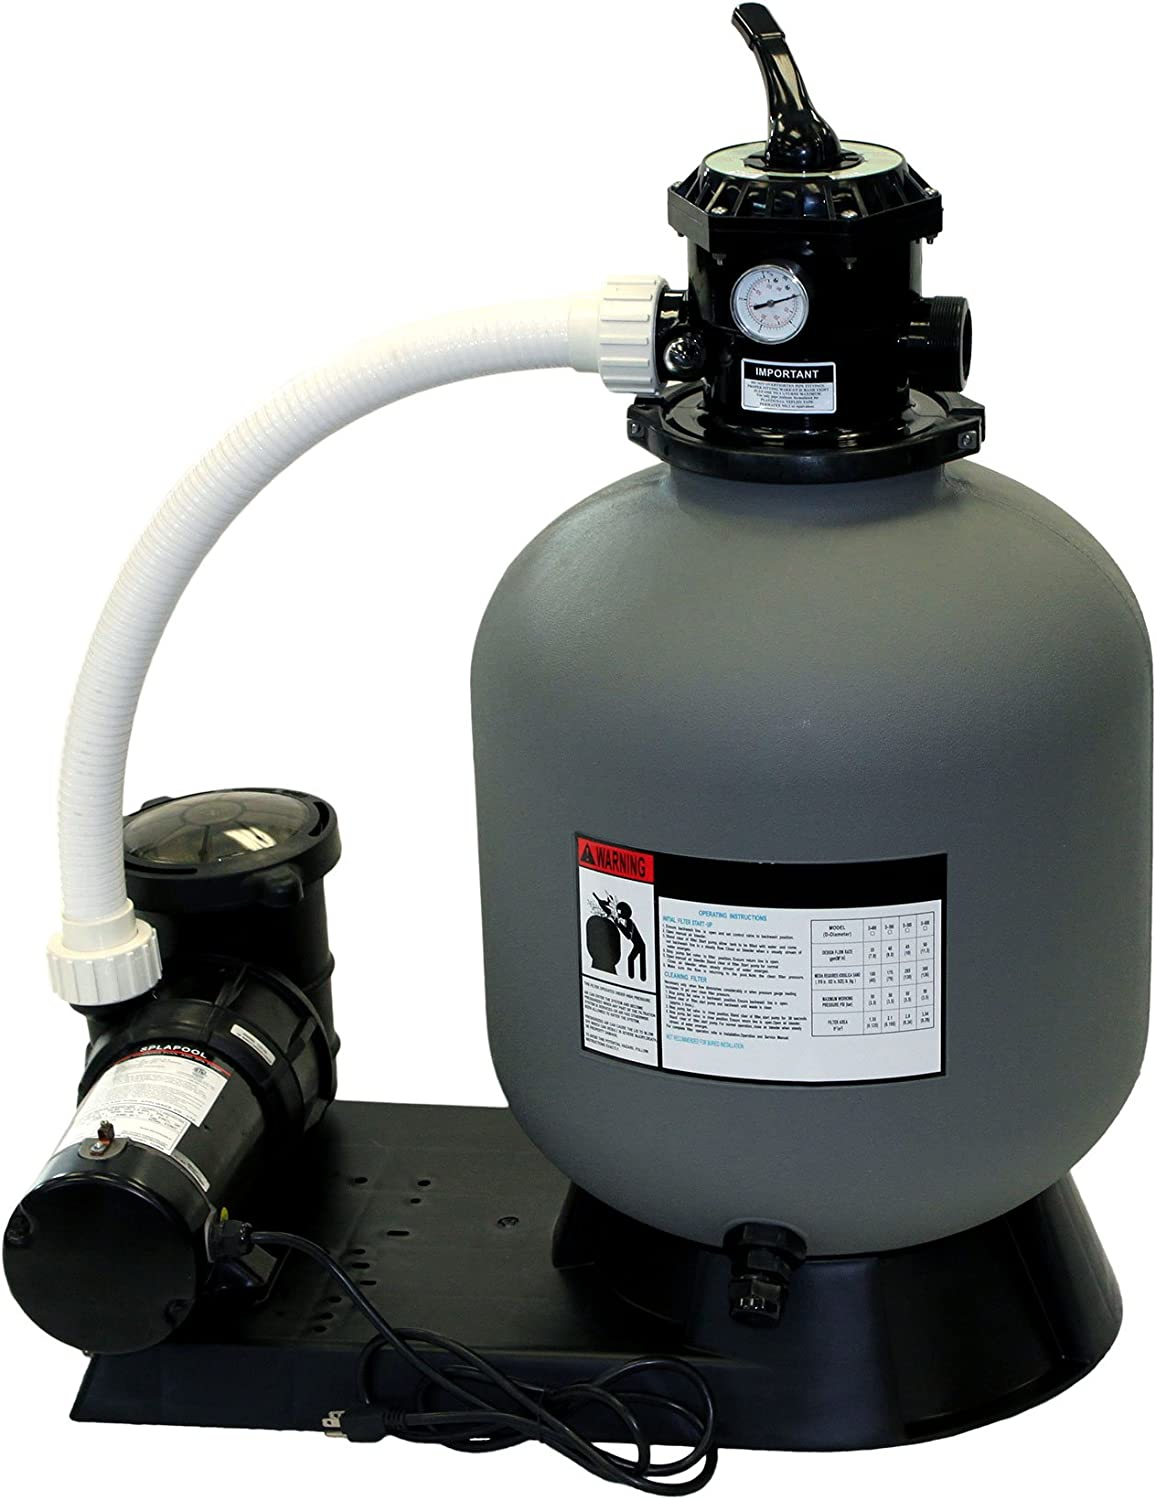 Rx Clear Radiant Complete Sand Filter System | for Inground Swimming Pool | Extreme Niagara 1 HP Pump | 24 Inch Tank | 220 Lb Sand Capacity | Up to 26,000 Gallons